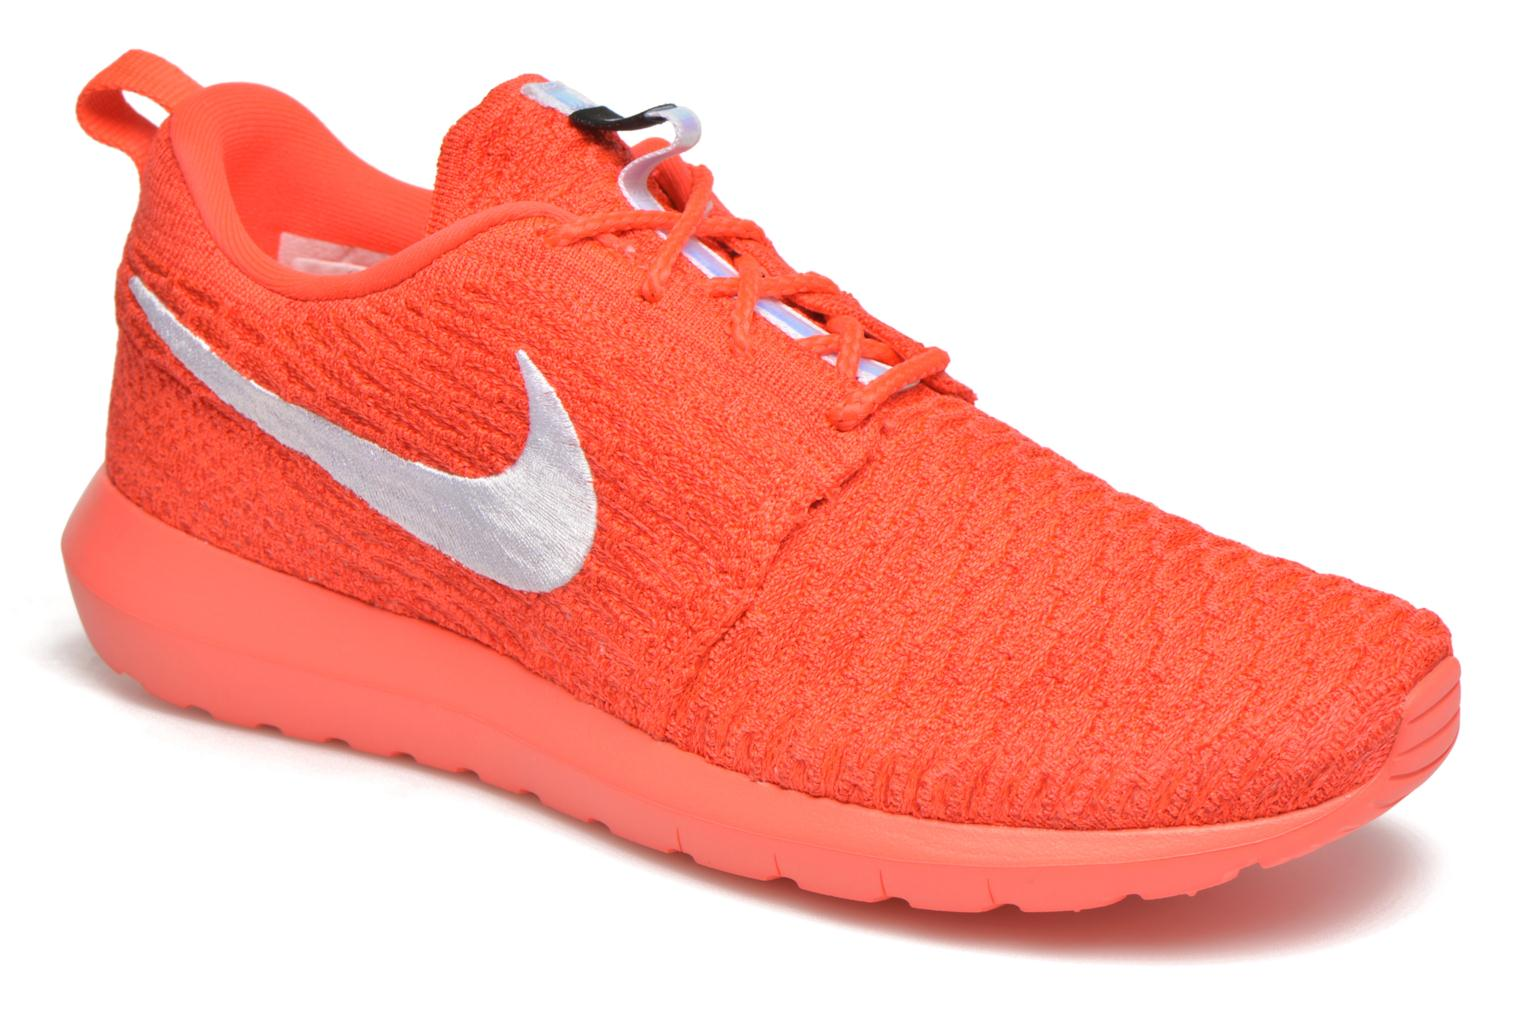 Nike Roshe Nm Flyknit Bright Crimson/Wht-Unvrsty Rd